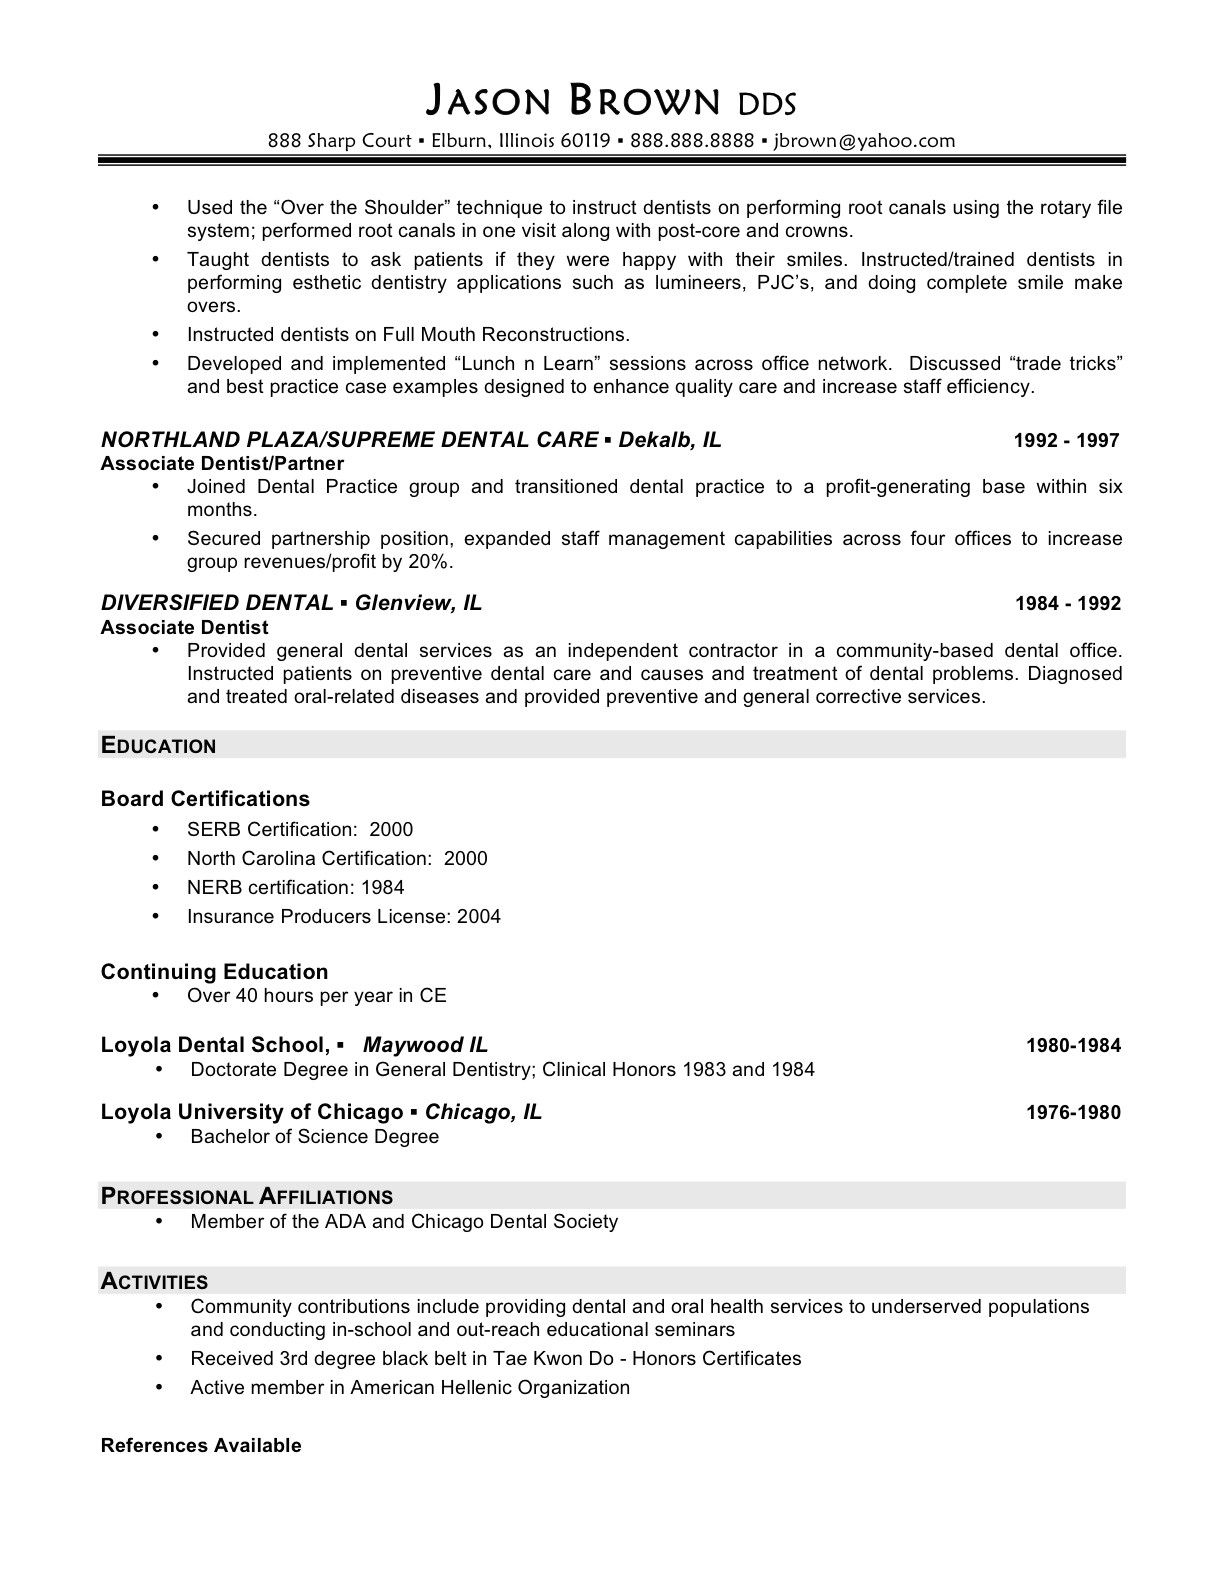 interview questions based on resume